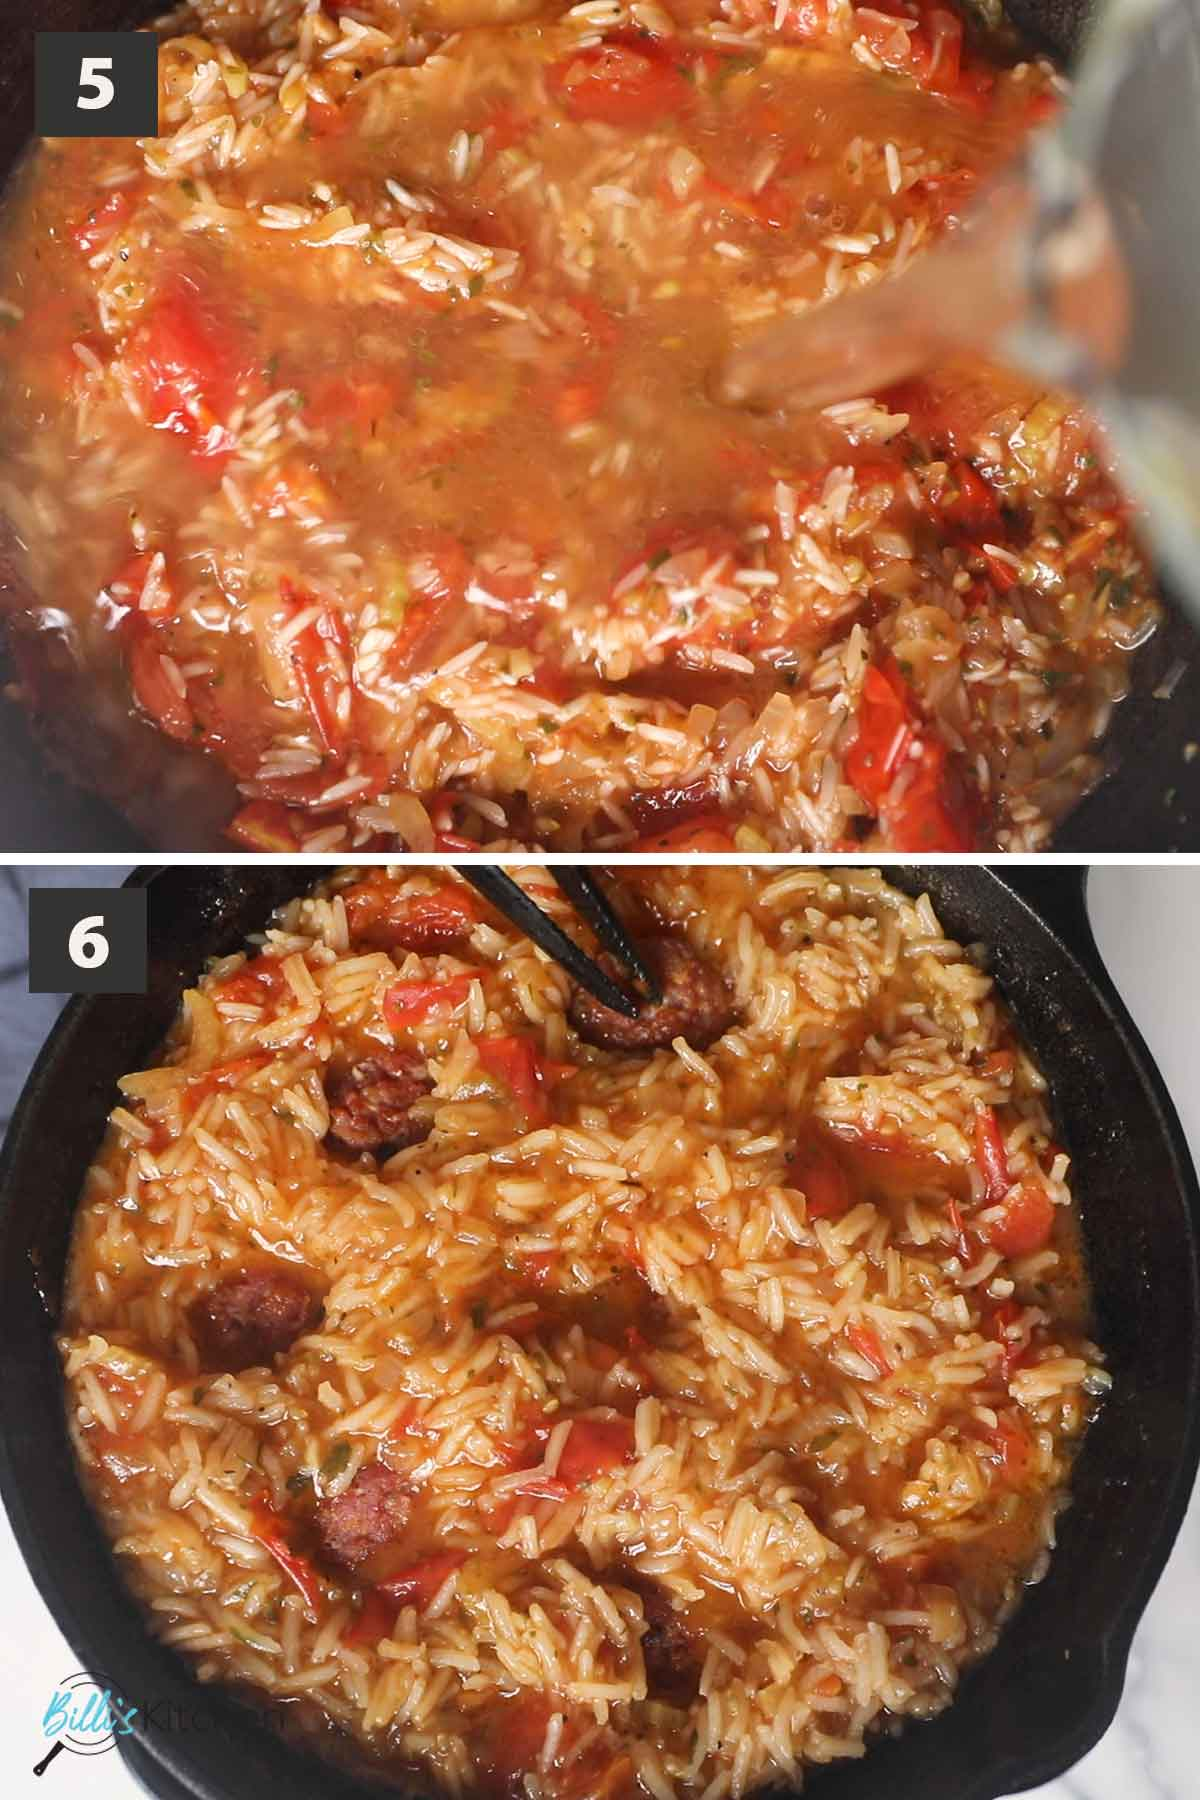 Second part of a collage of images showing the step by step process on making Italian Sausage and Rice in one pot.